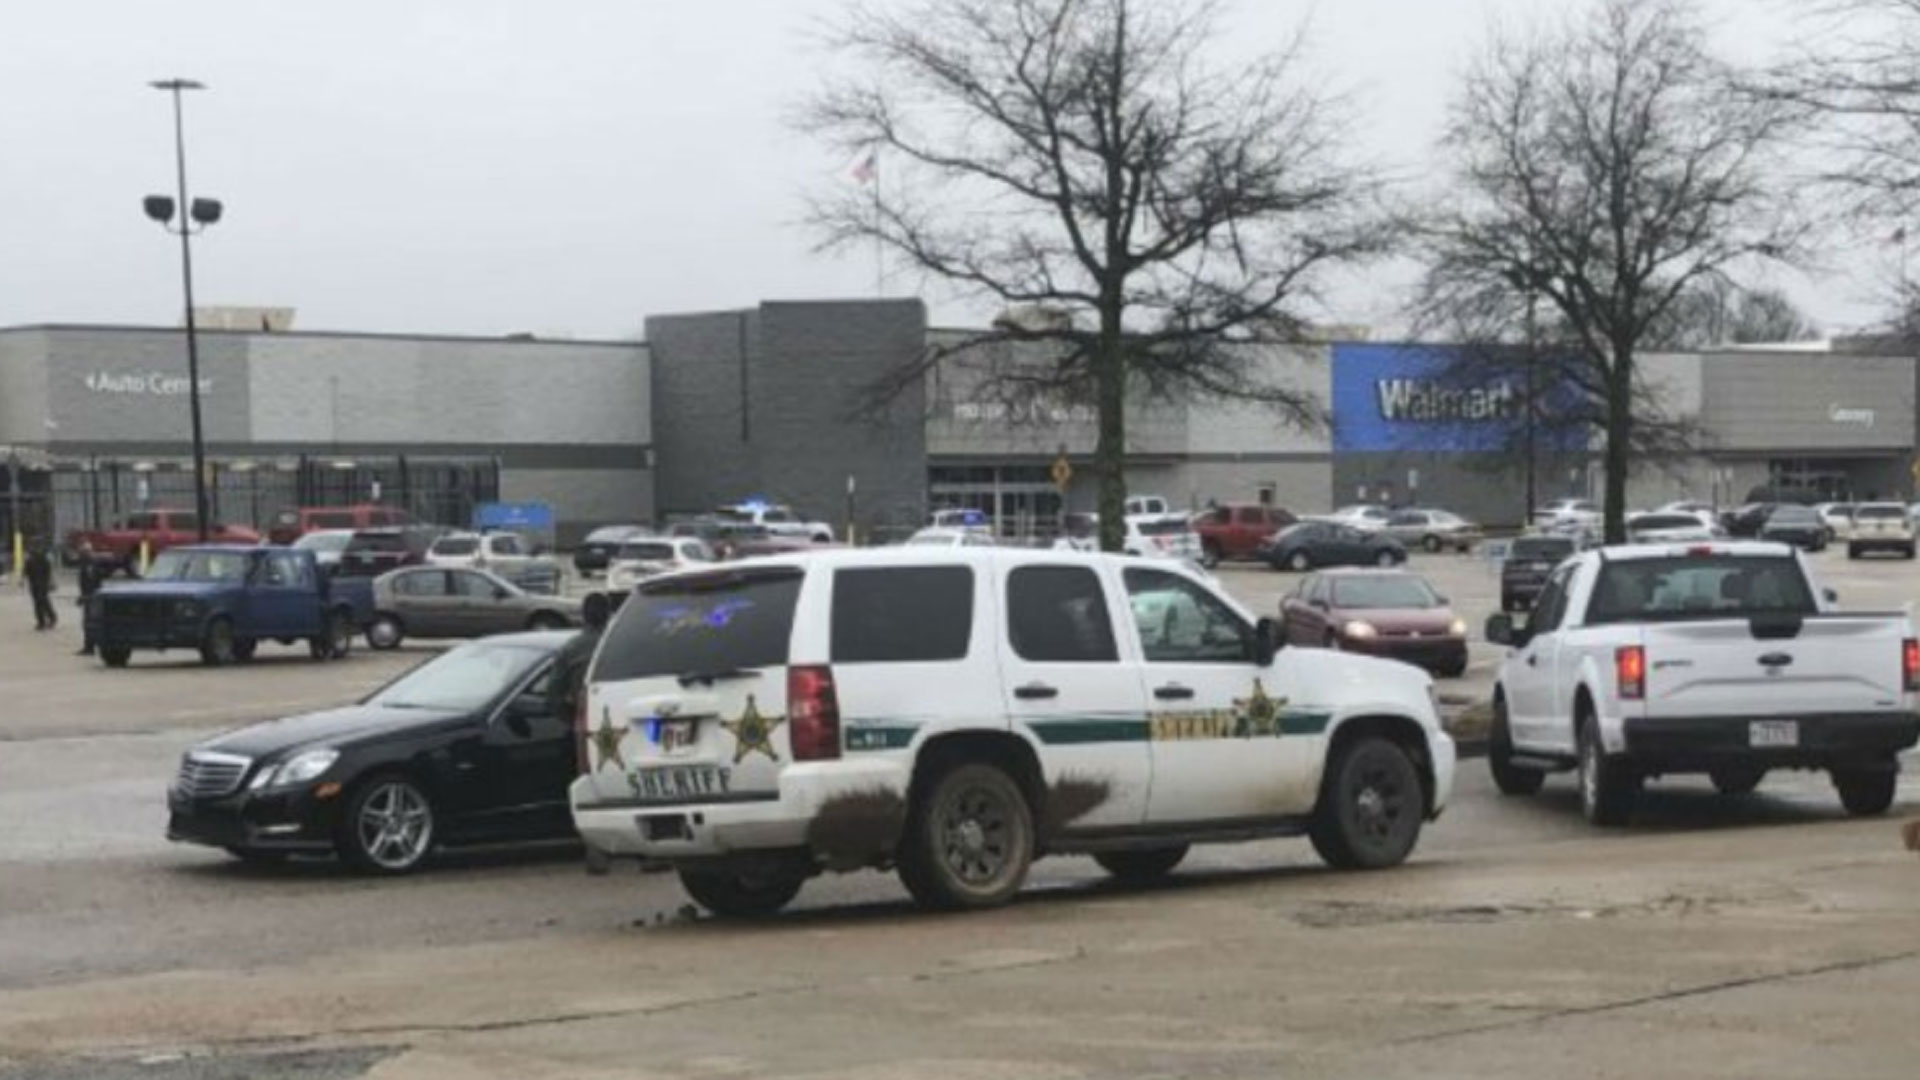 Two police officers are shot at a Walmart in Arkansas. (Photo provided by WREG)